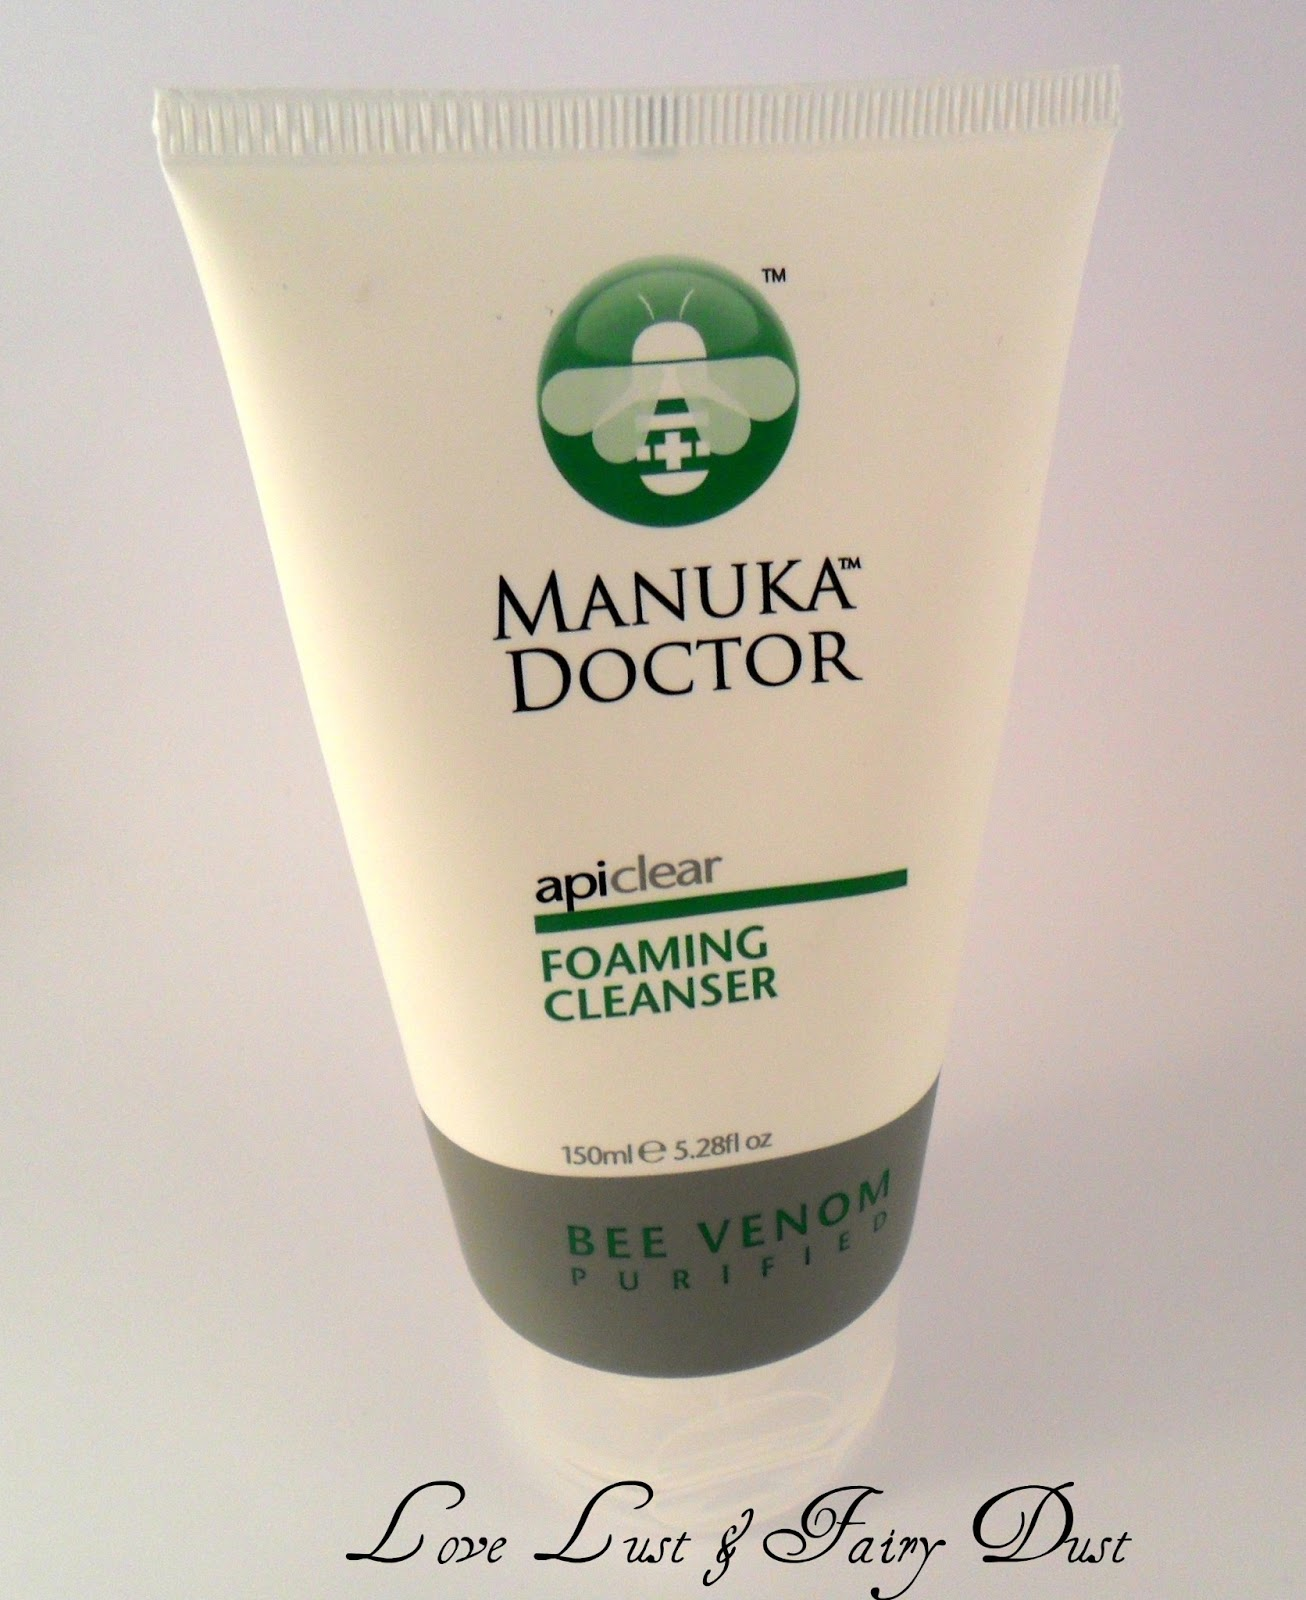 Manuka Doctor Apiclear Foaming Cleanser